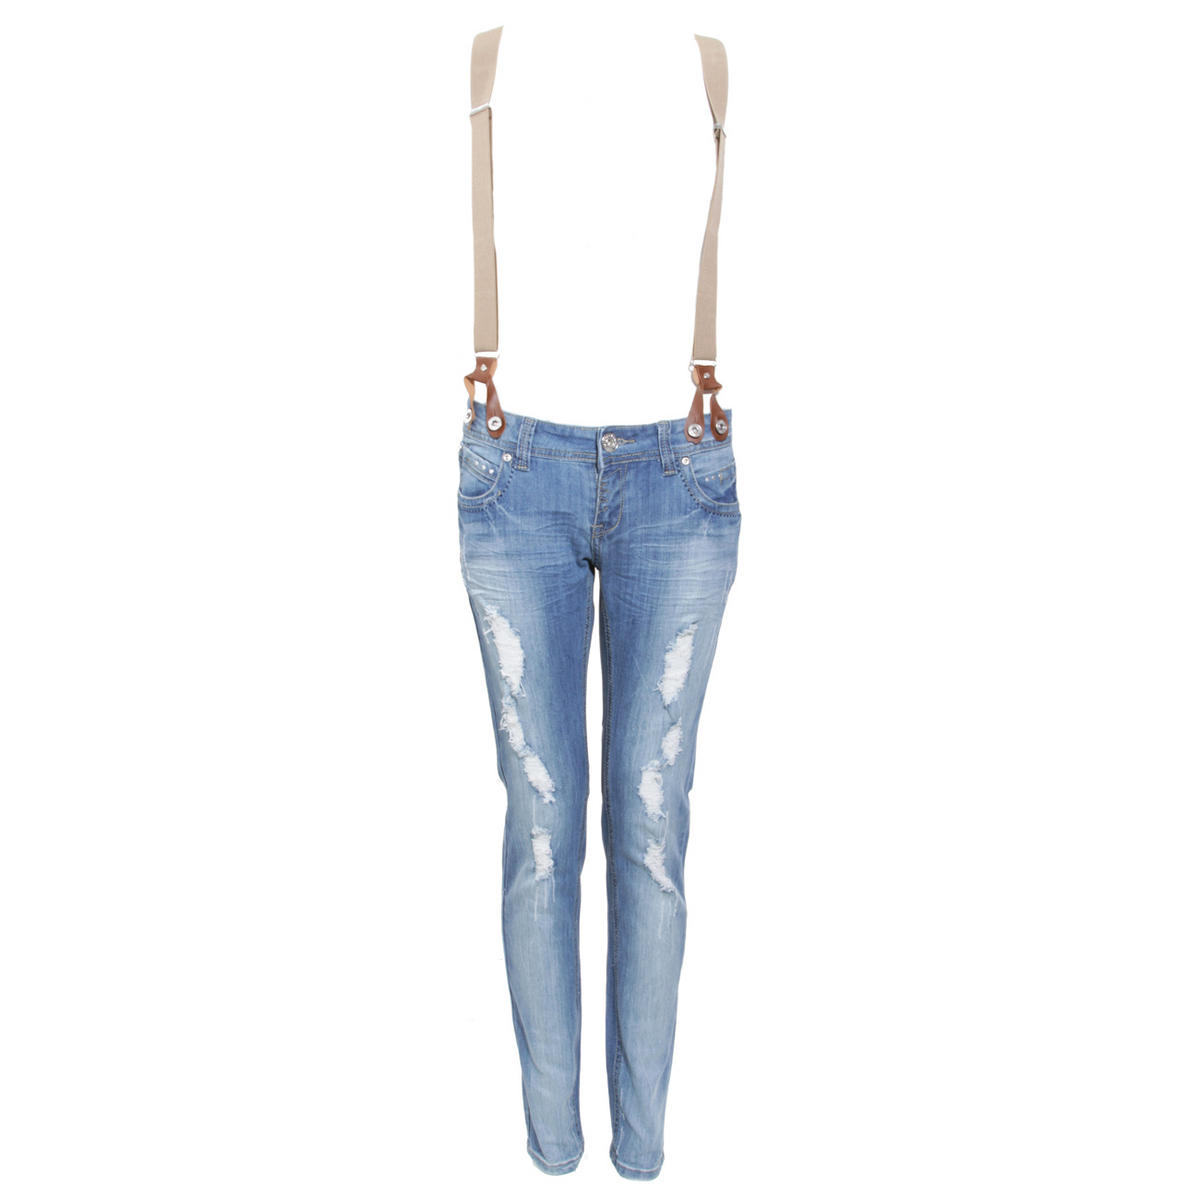 Distressed Skinny Jeans with Braces Preview